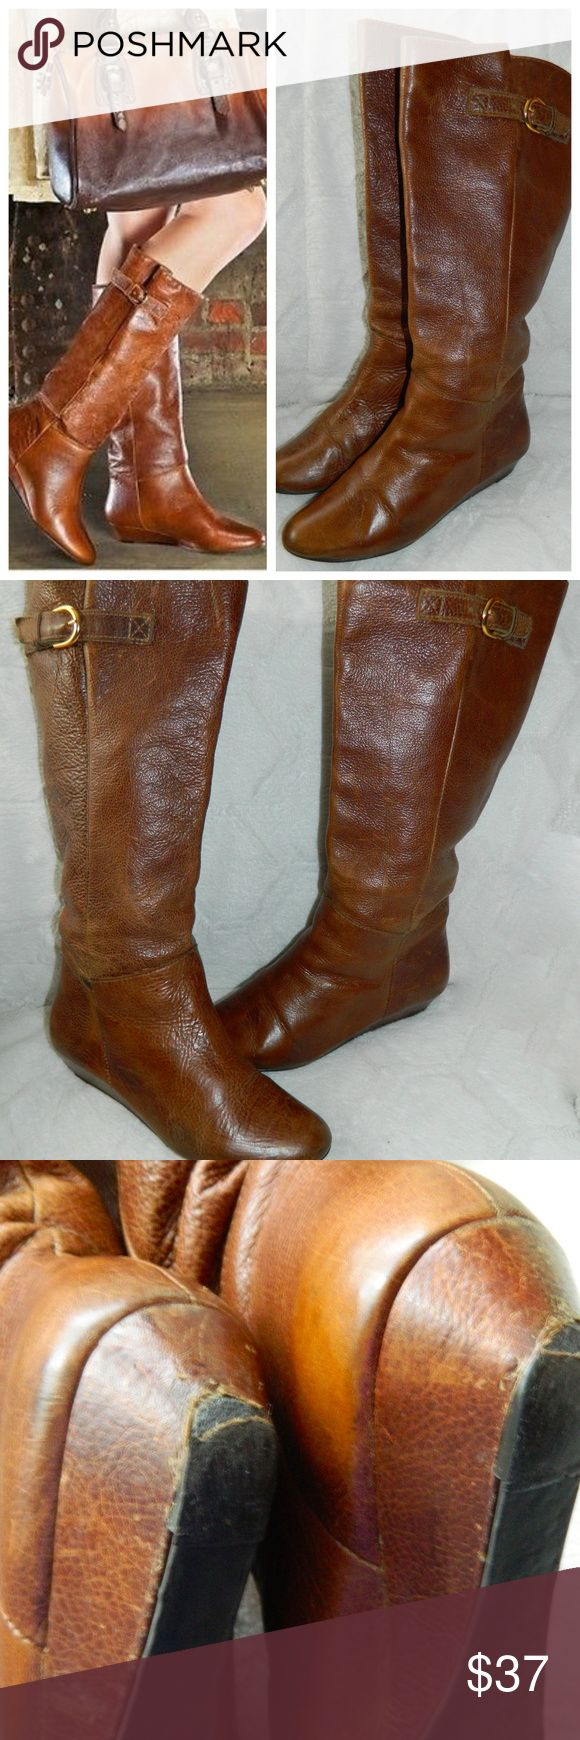 STEVE MADDEN INTYCE Sz 7.5 RIDING BOOTS Cognac TAN PLEASE NOTE some wear to heels Steve Madden Shoes Heeled Boots